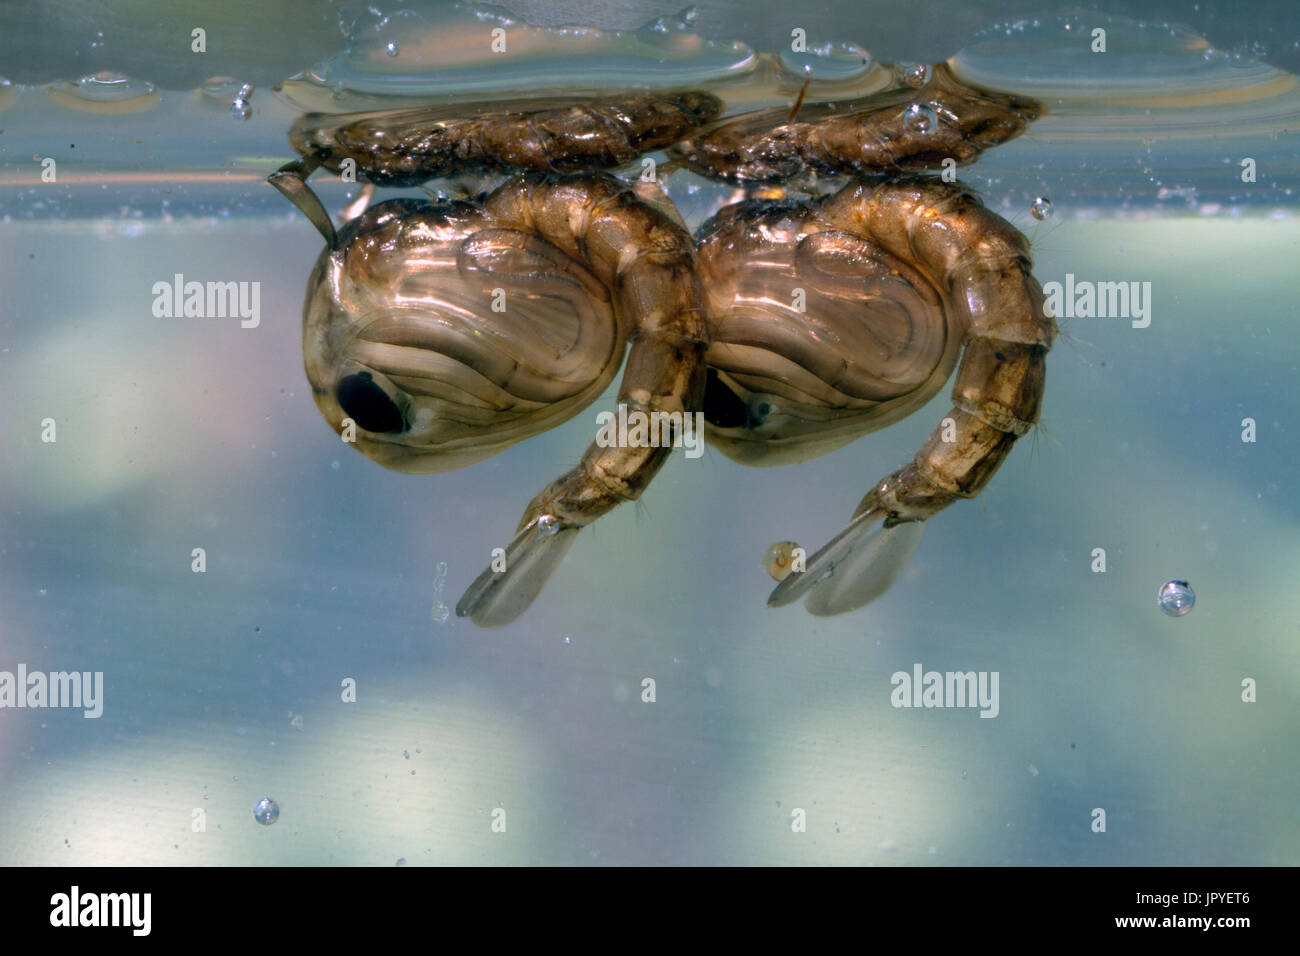 Mosquito larvae beneath the surface - France - Stock Image